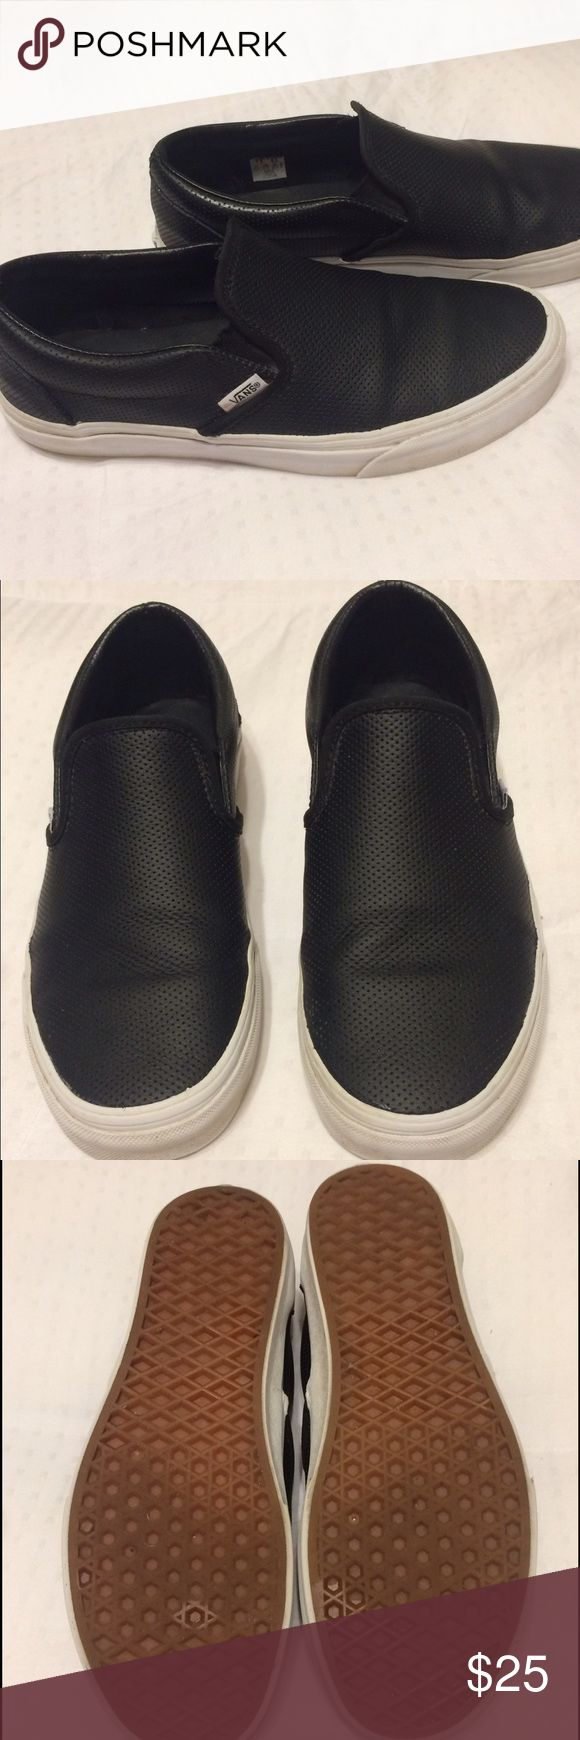 Black Leather VANS Slip On Sneakers Shoes Size 9 Black Perf Leather Slip On VANS Sneakers. Size 9 Women's or 7.5 Men's Vans Shoes Sneakers